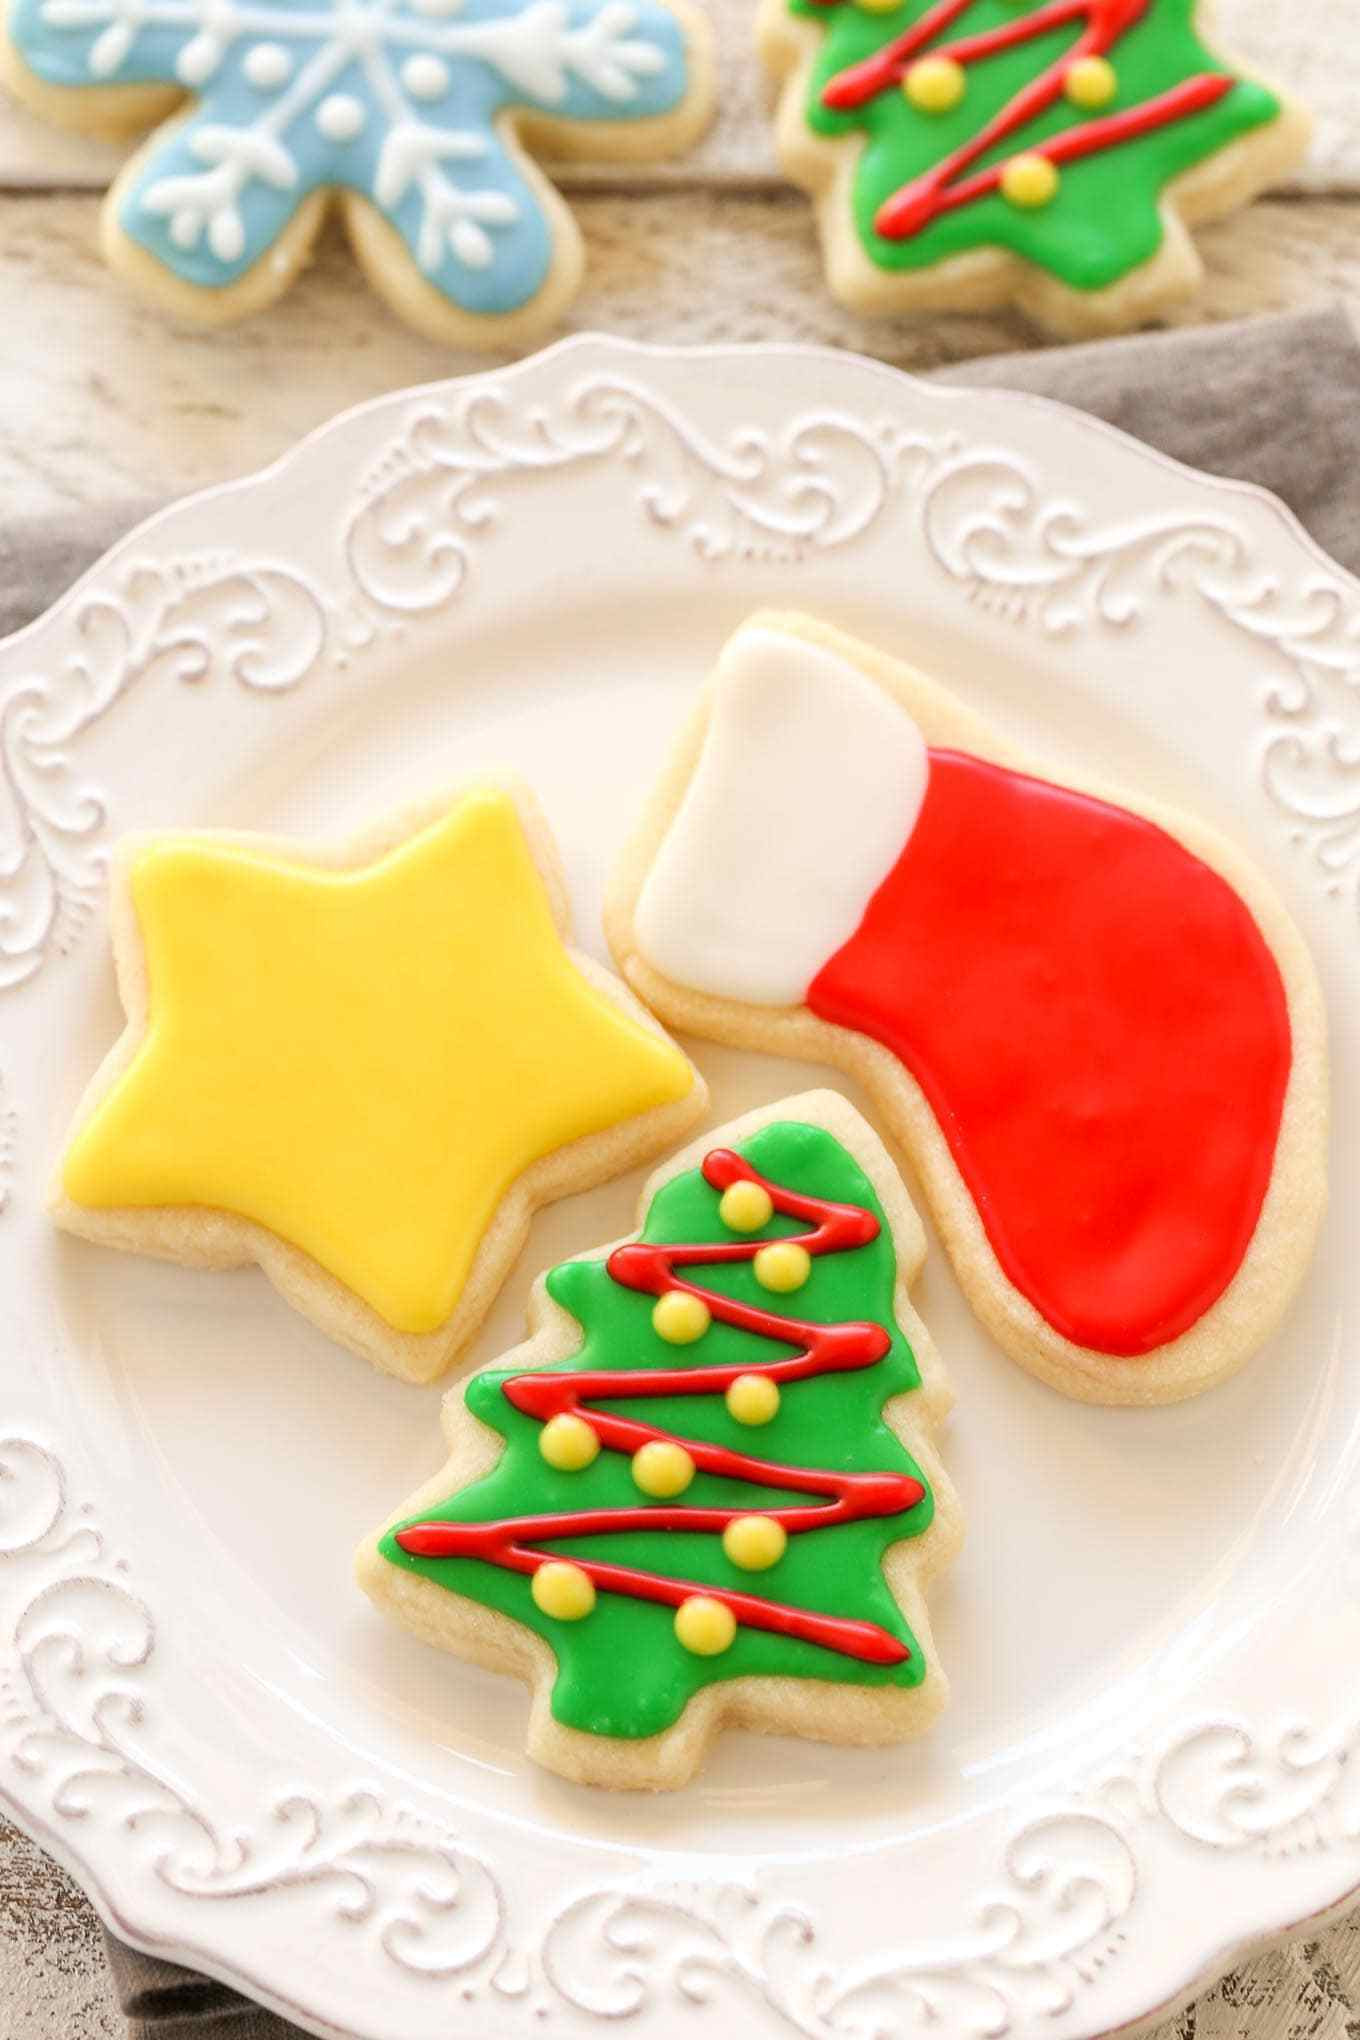 Roll Out Christmas Cookies  Soft Christmas Cut Out Sugar Cookies Live Well Bake ten